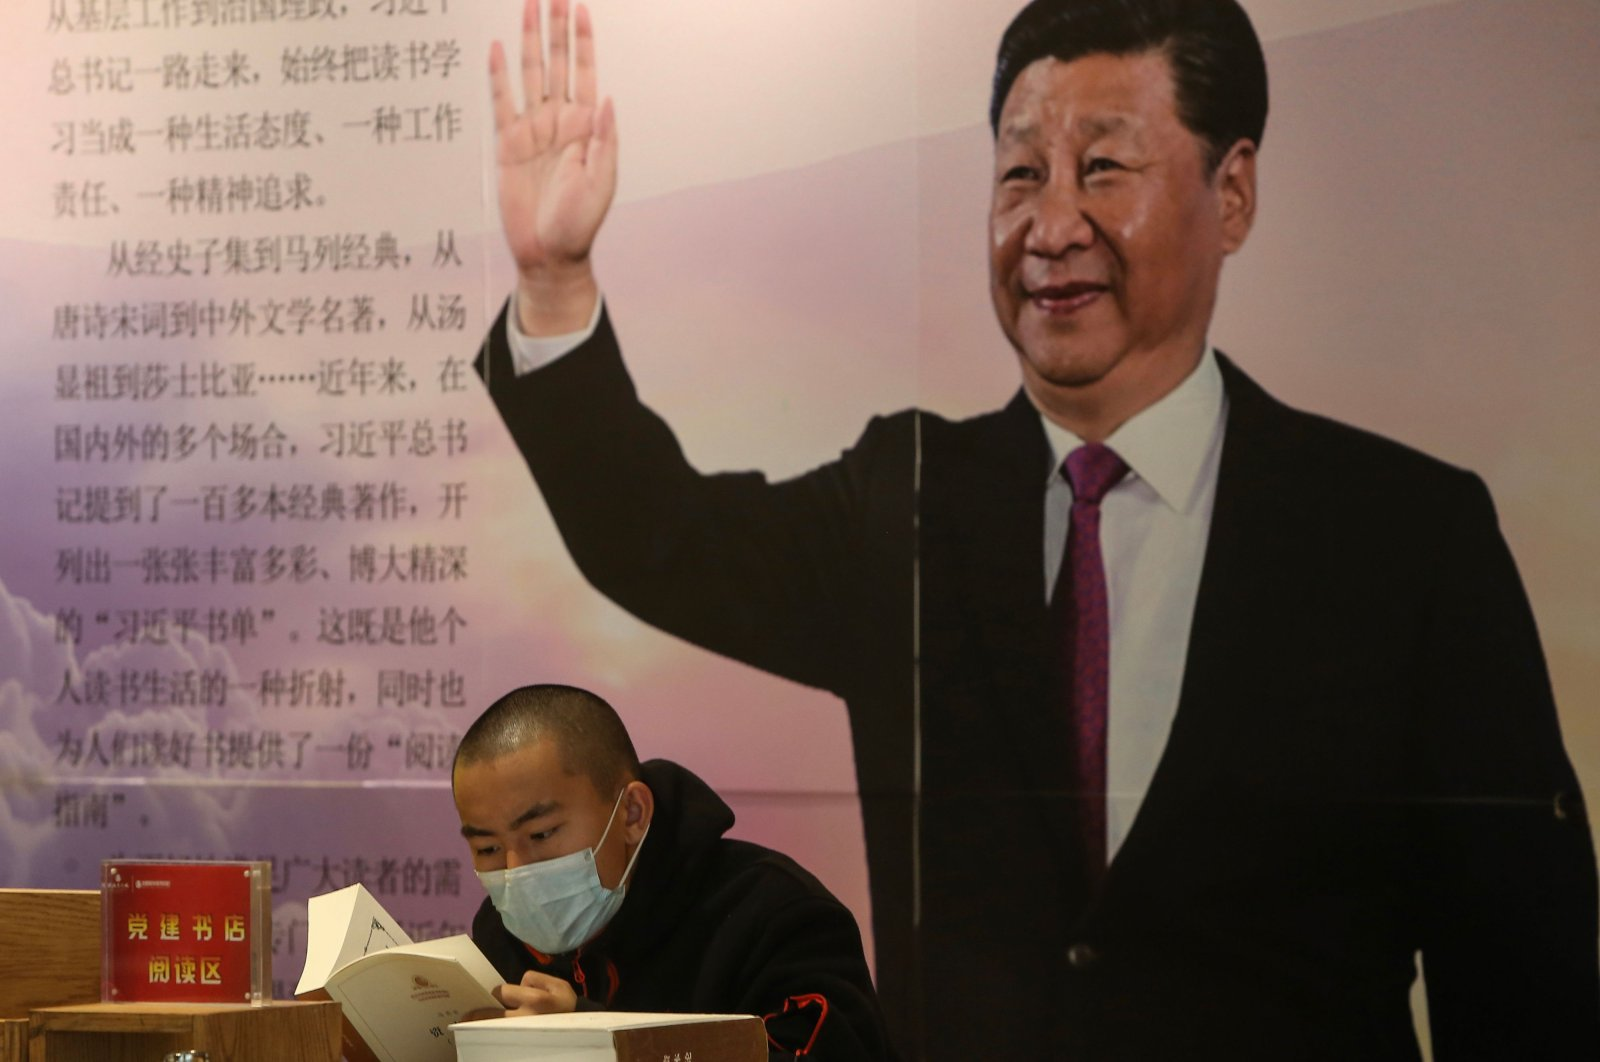 A man reads a book in front of a board with an image of China's President Xi Jinping at a book store during World Book Day in Shenyang in China's northeastern Liaoning province on April 23, 2020. (AFP Photo)